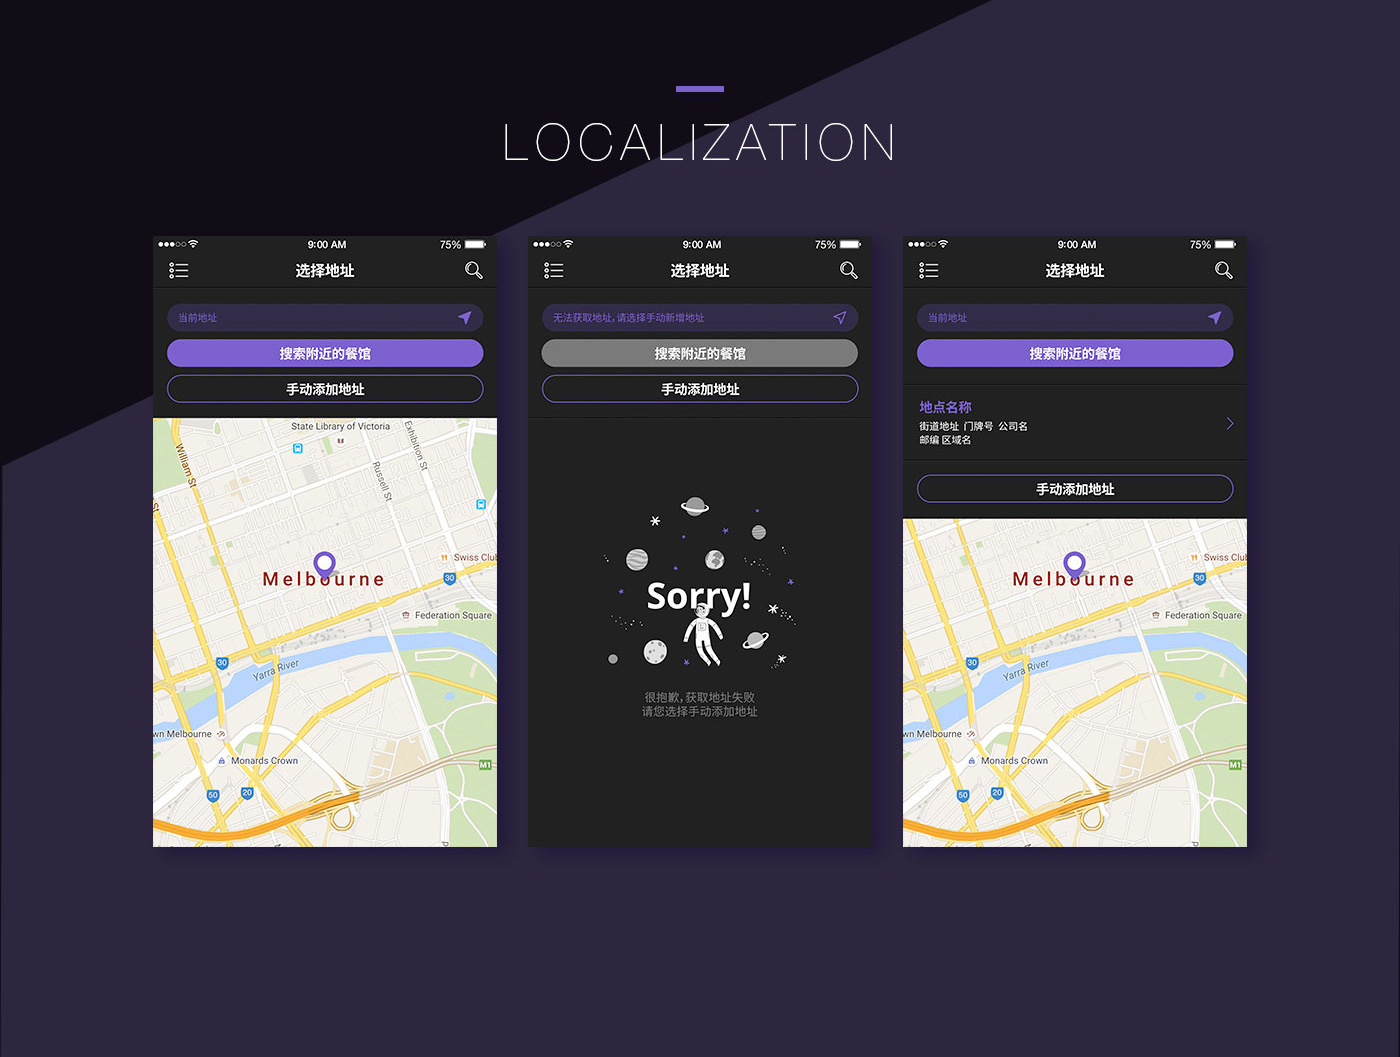 App and web design by Z Creative Studio Branding & Graphic Design Melbourne